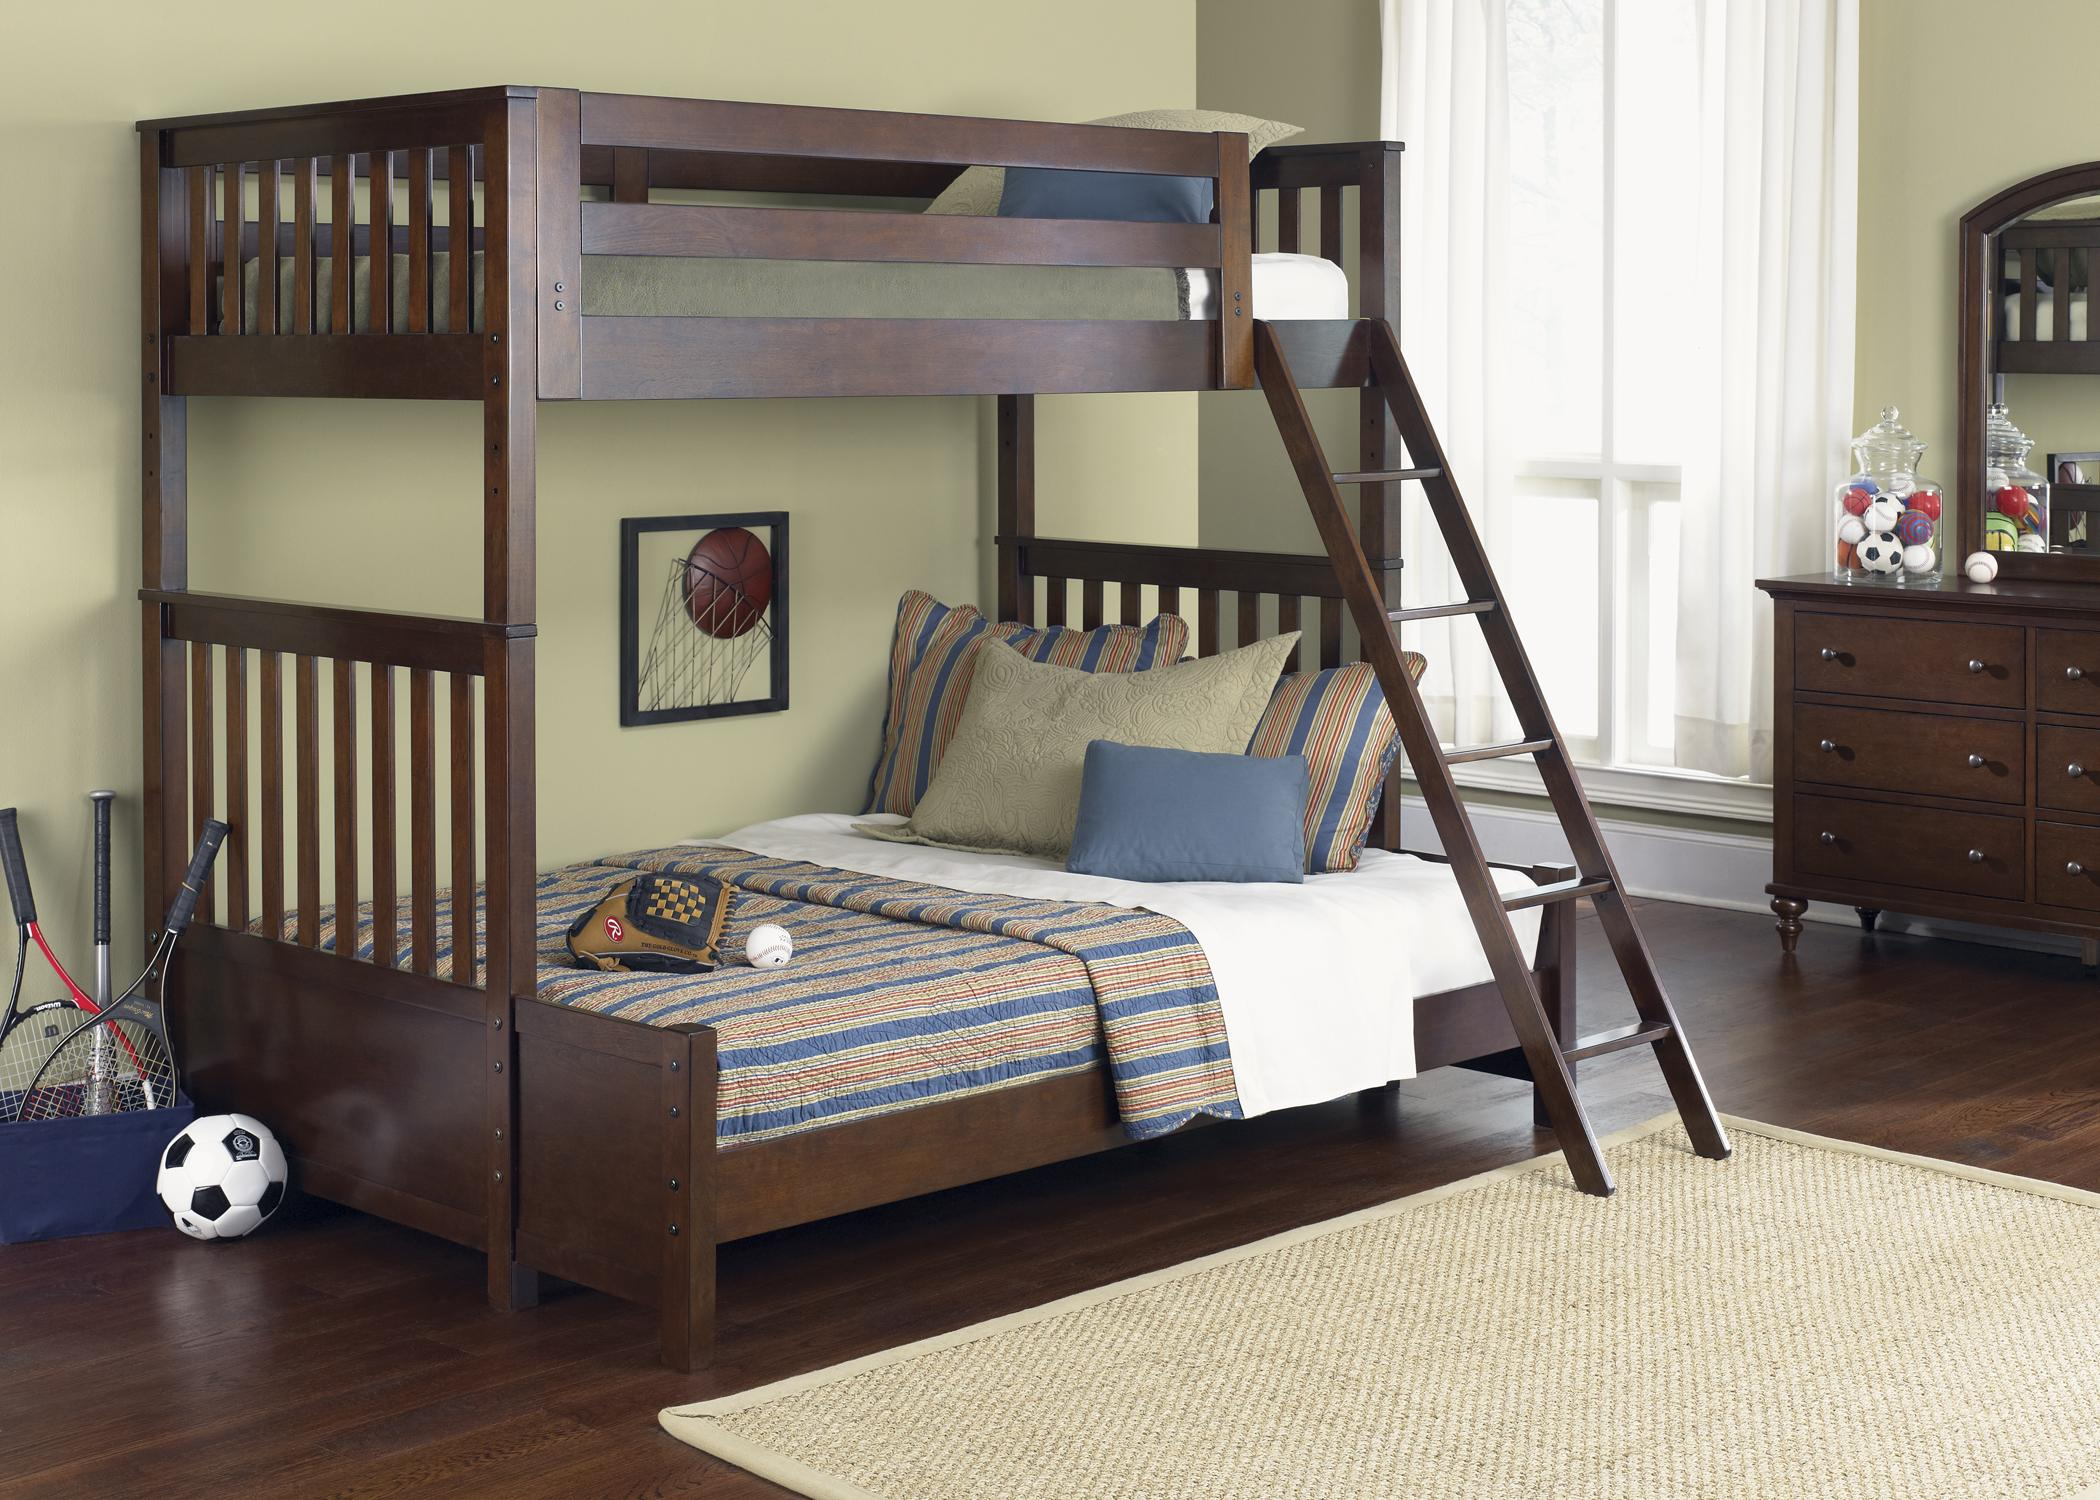 Admirable Abbott Ridge Youth Bedroom 277 By Liberty Furniture Interior Design Ideas Helimdqseriescom